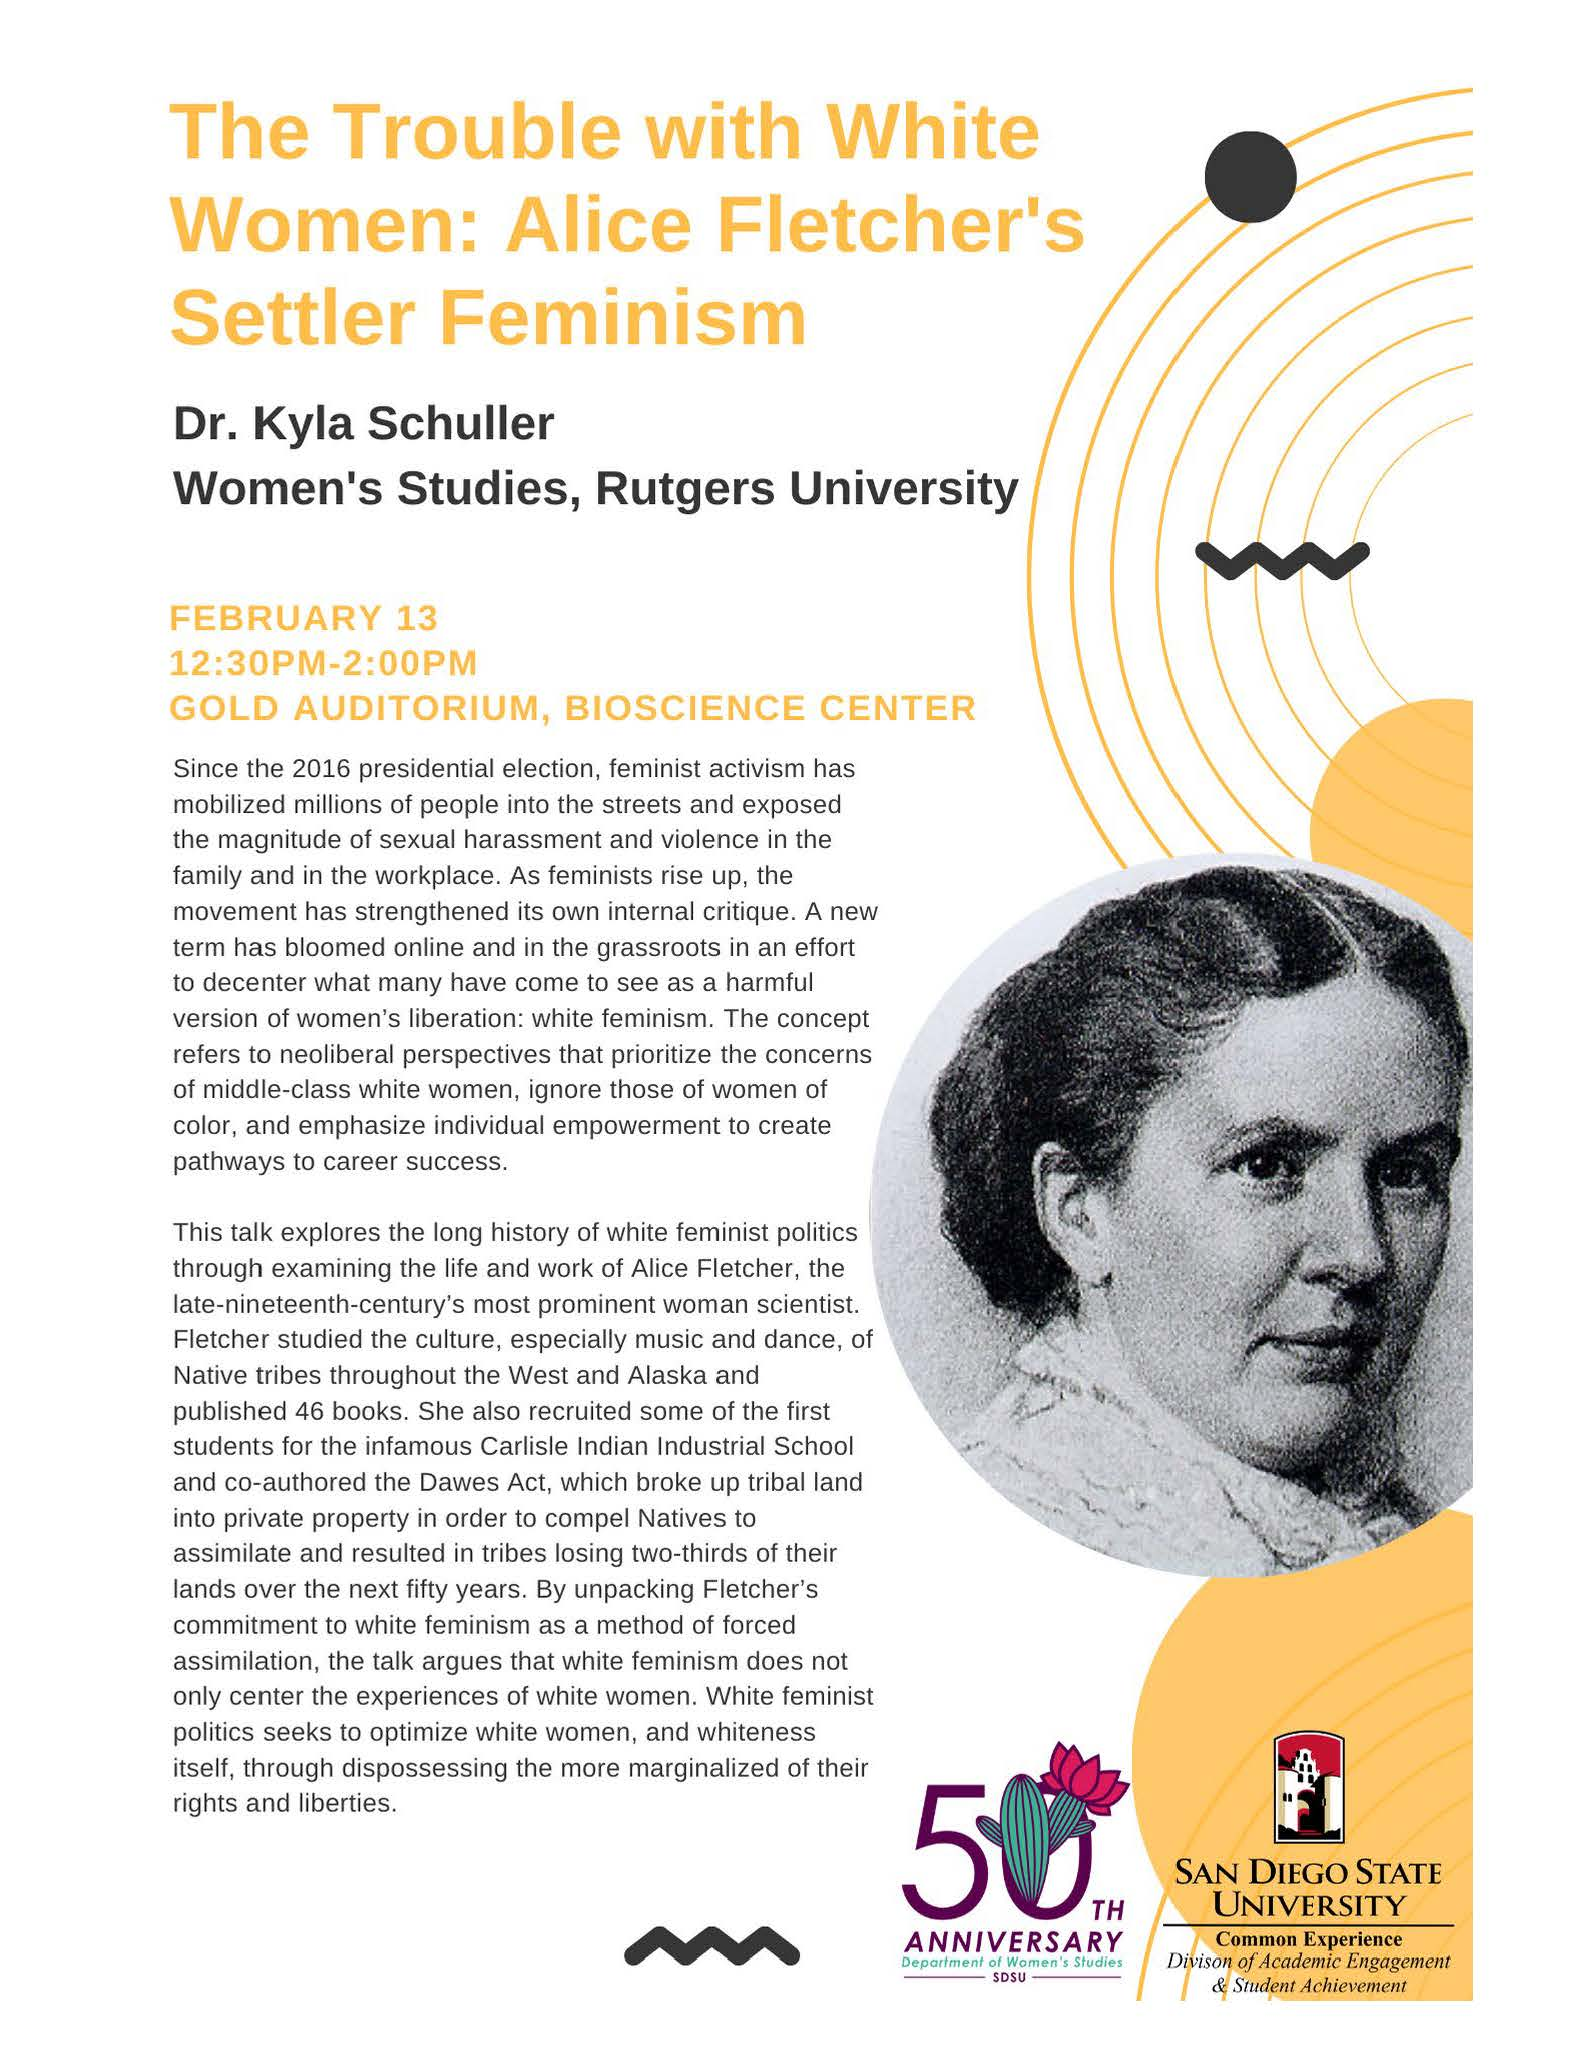 The Trouble with White Women: Alice Fletcher's Settler Feminism: A lecture by Dr. Kyla Schuller